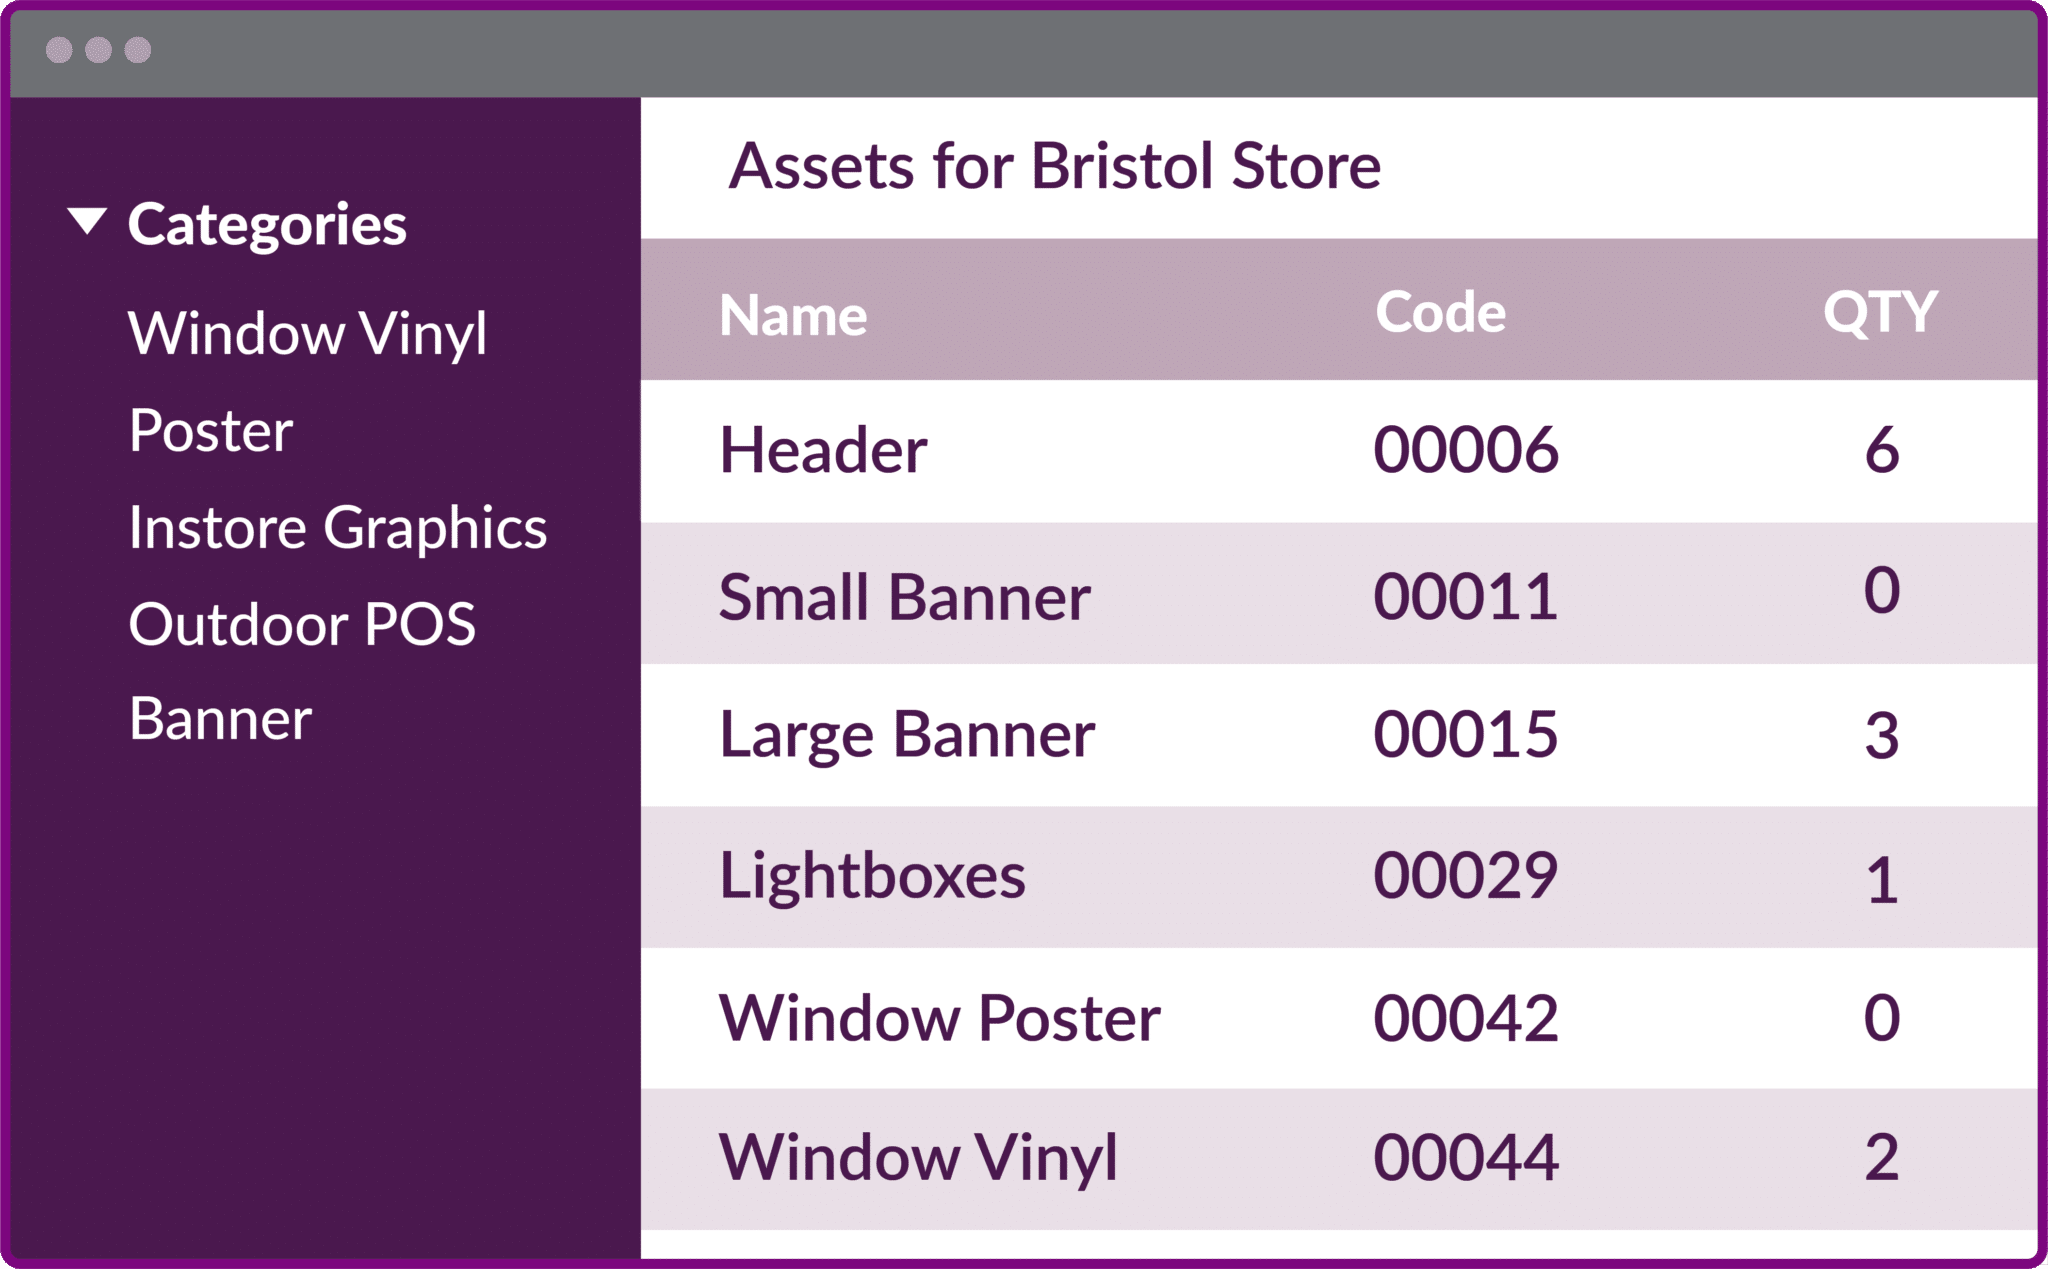 Store Profiling and Distribution